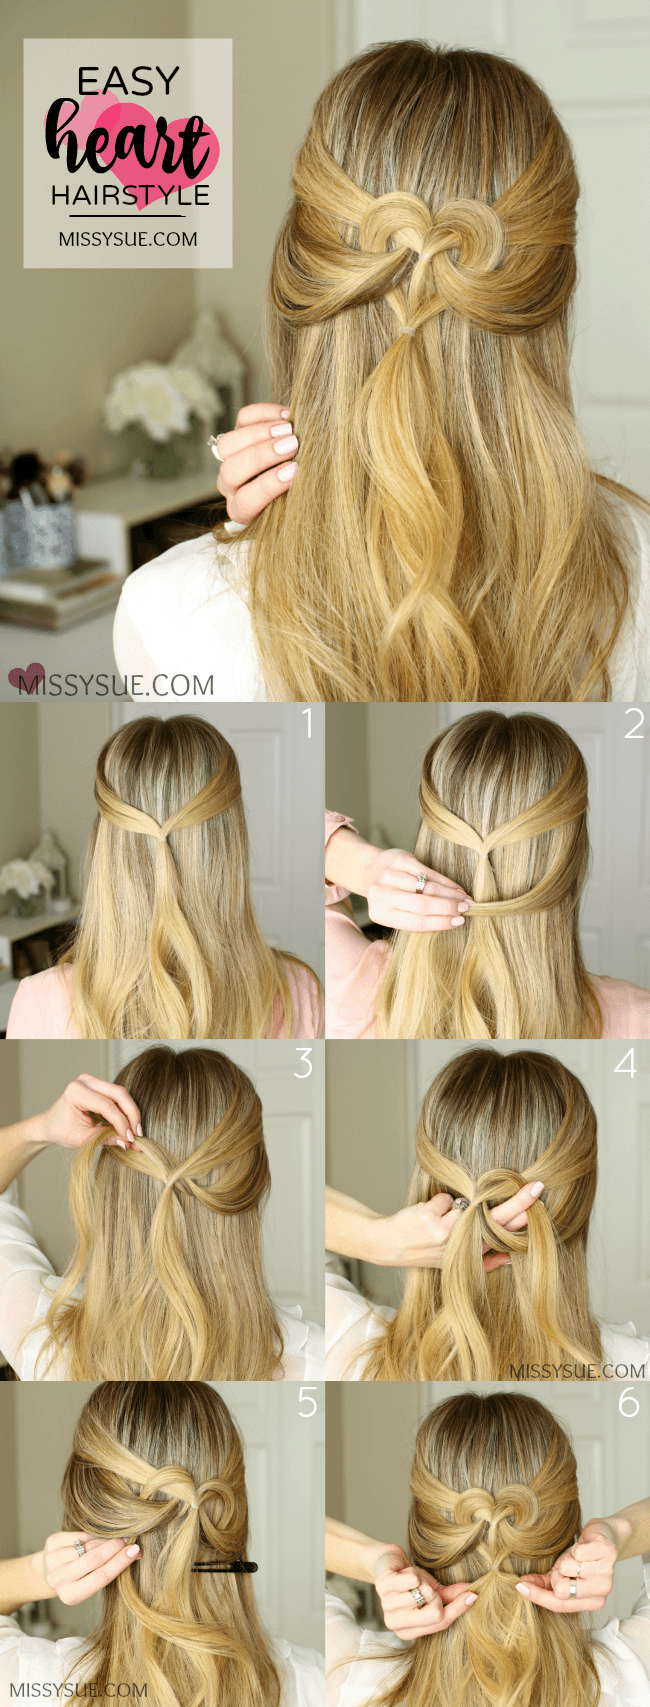 Heart Hairstyles 2 Ways